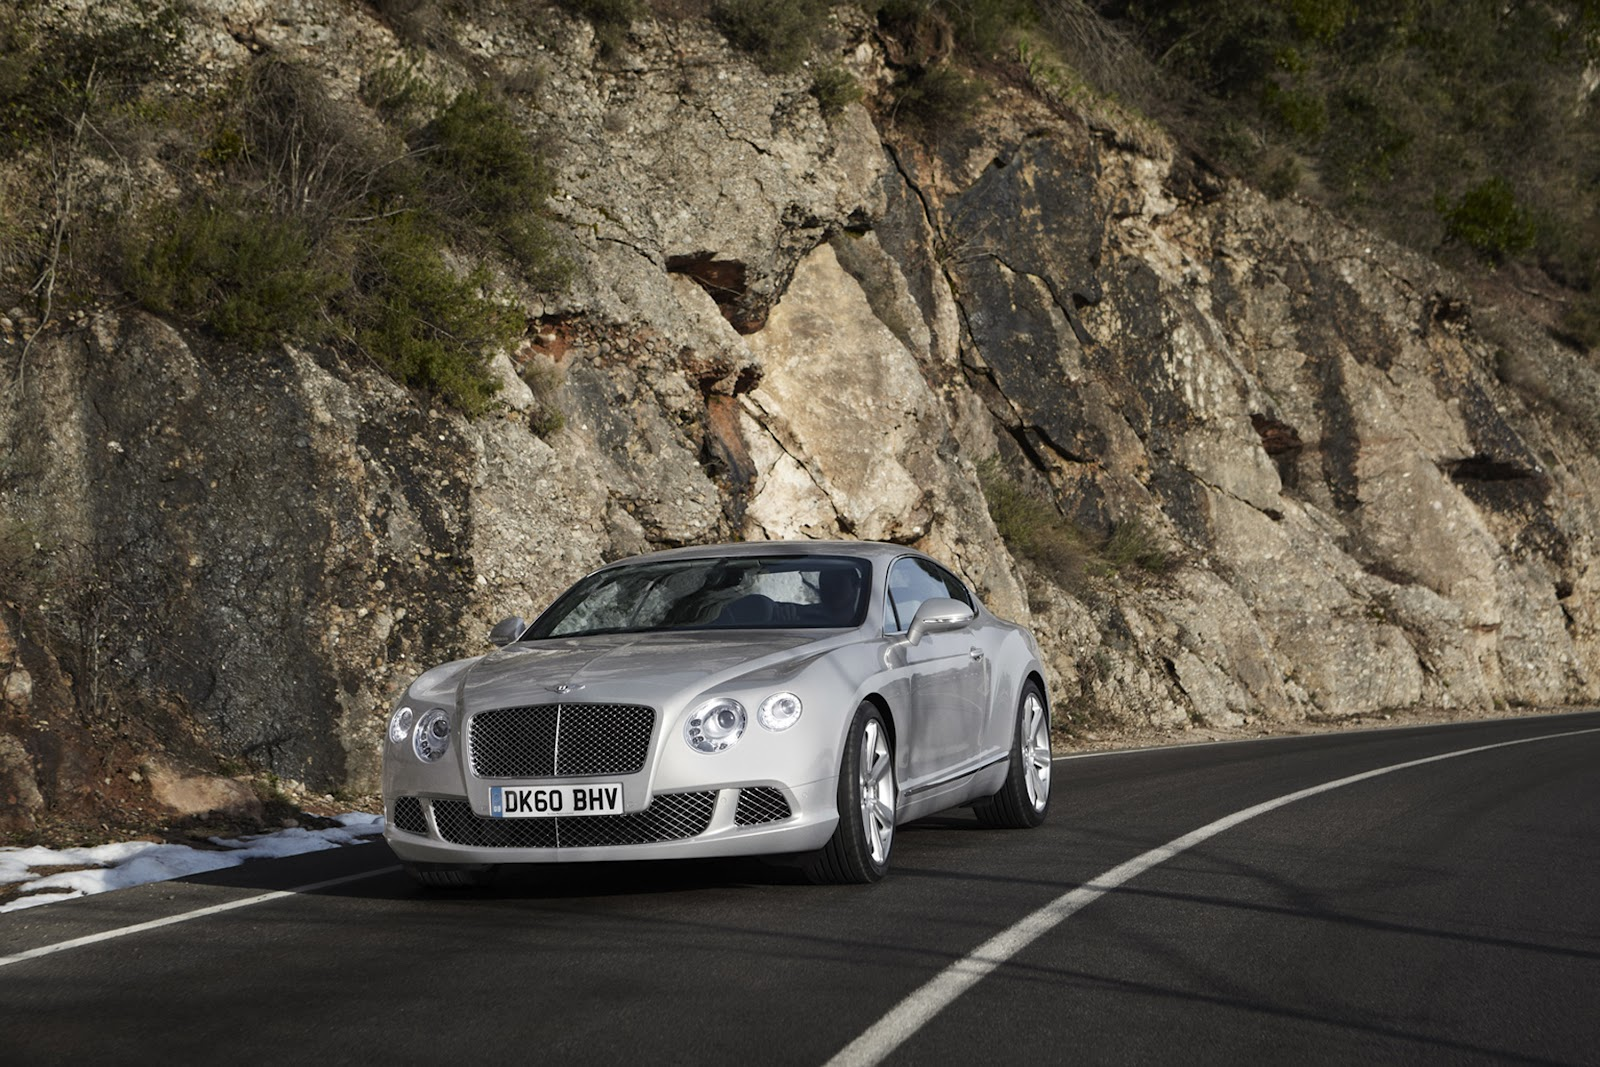 2013 Bentley GT Luxury